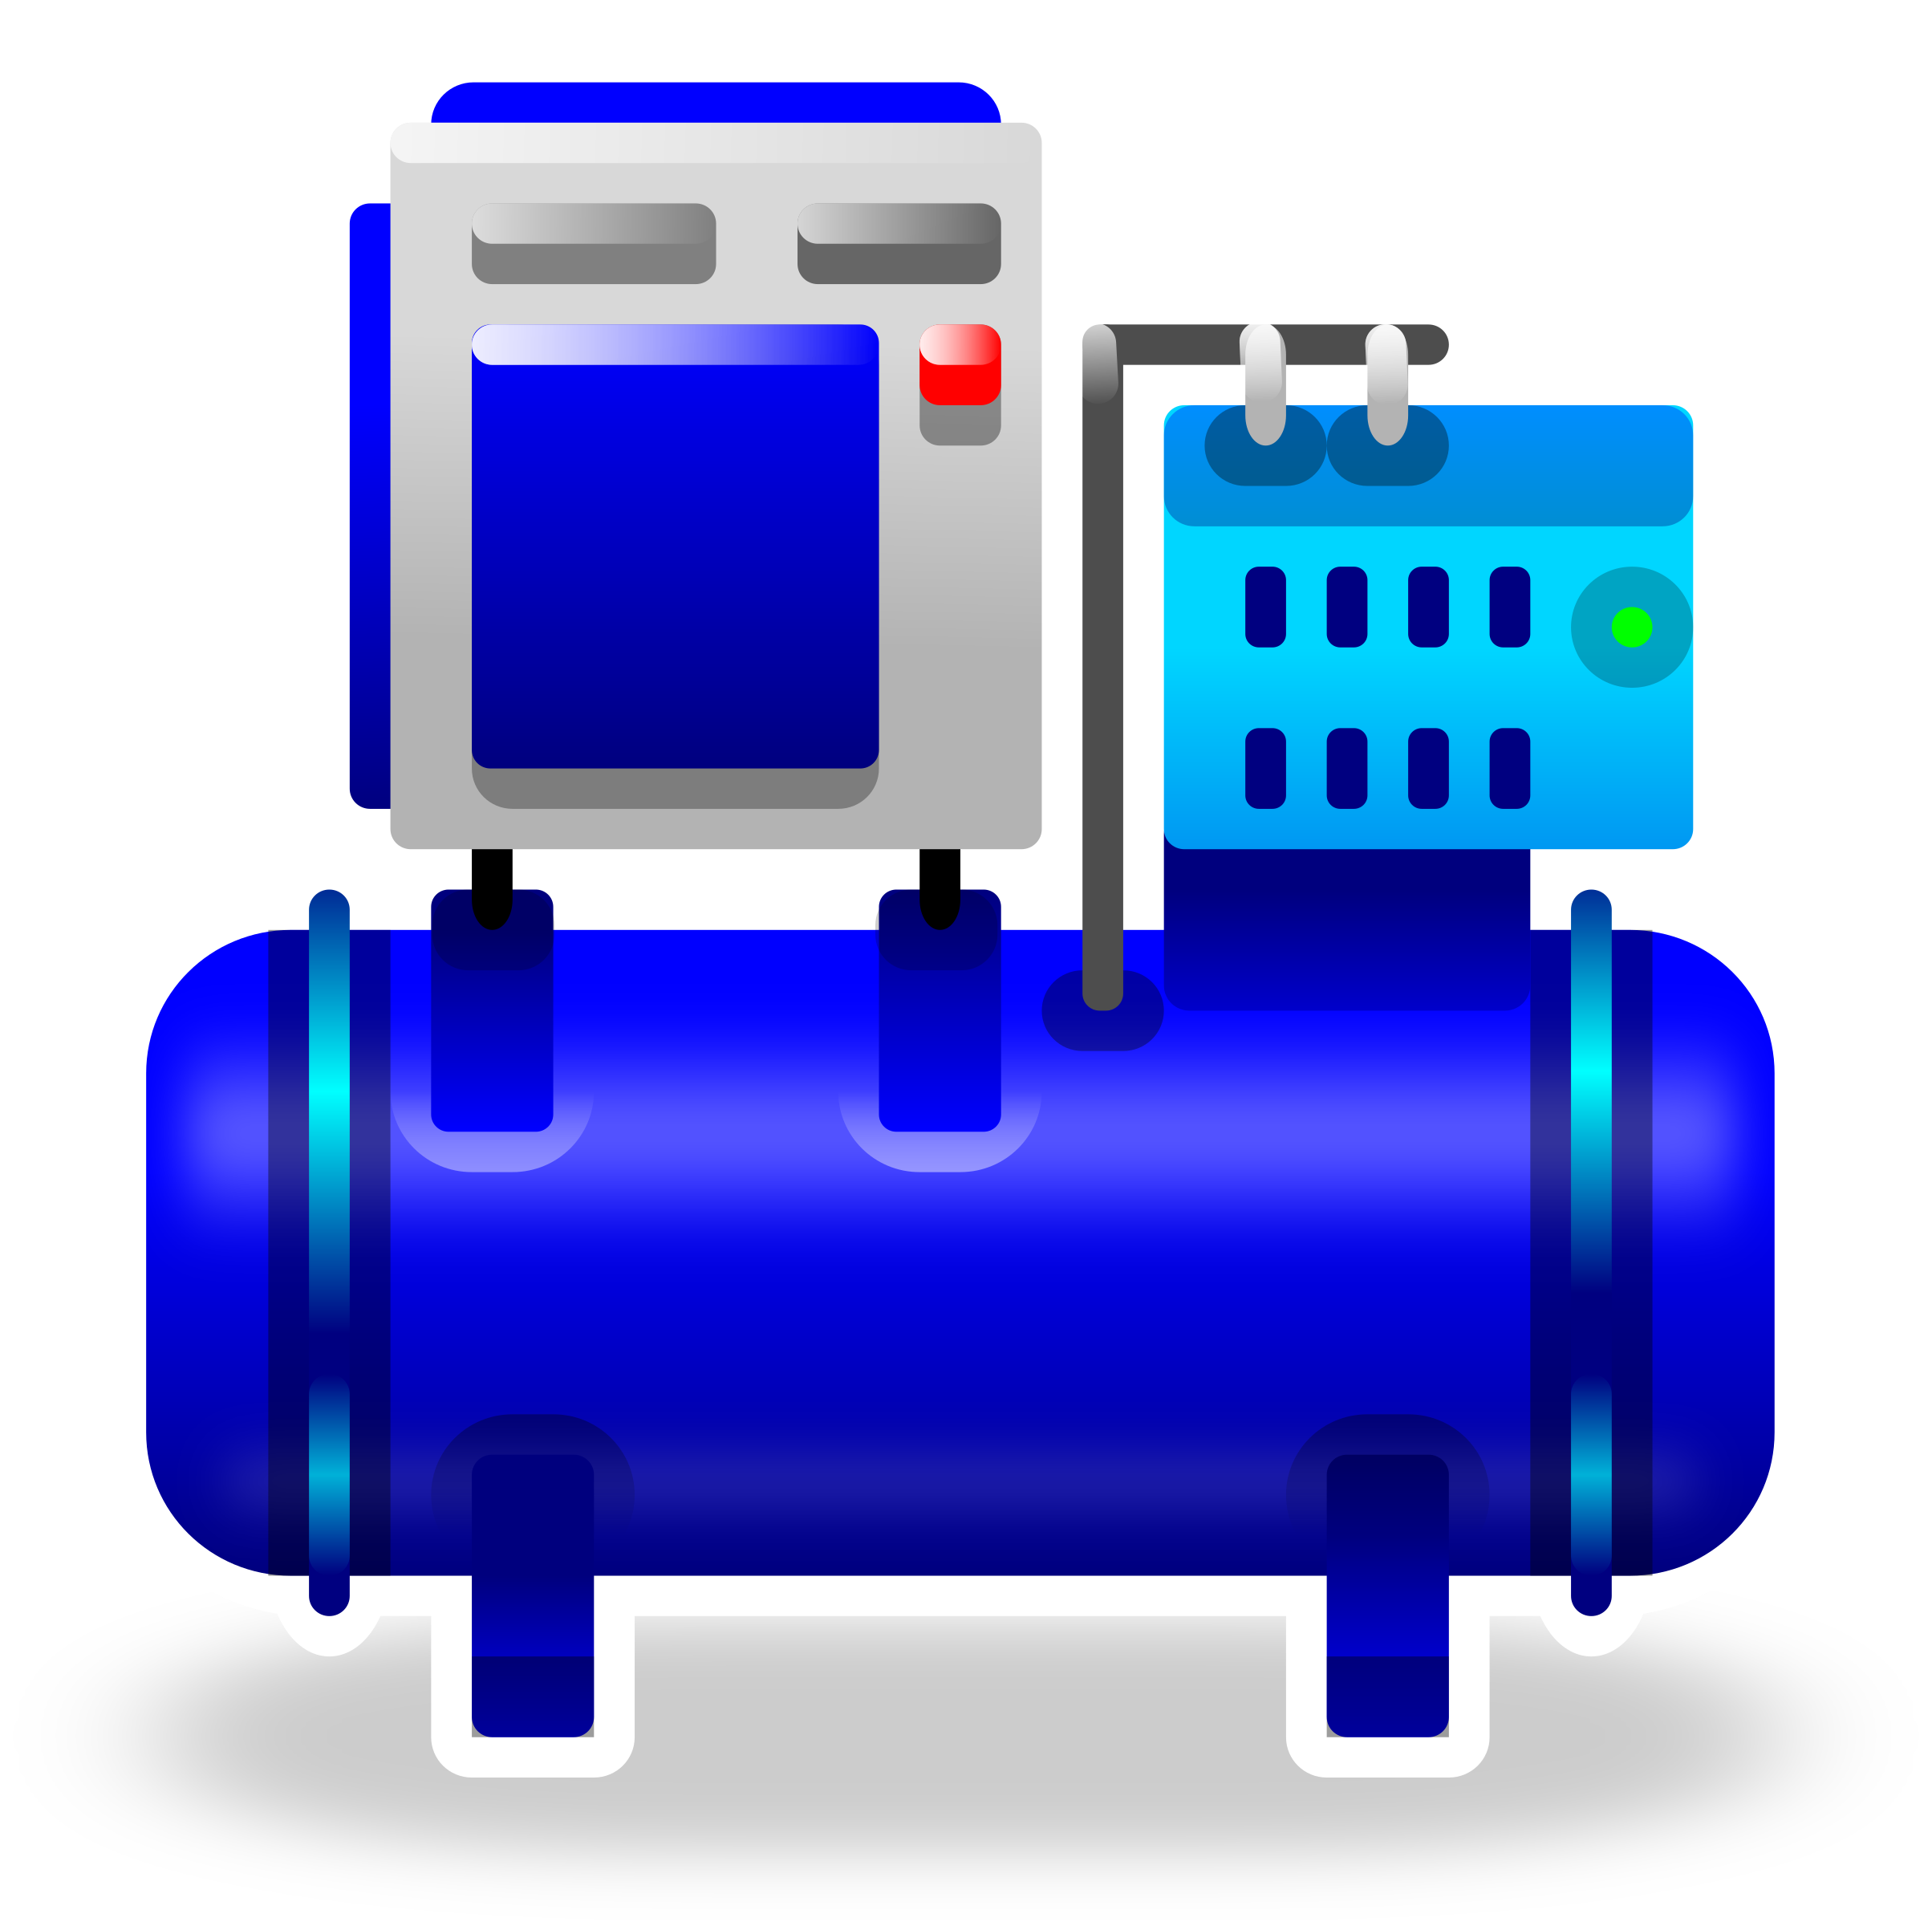 Air compressor clipart.